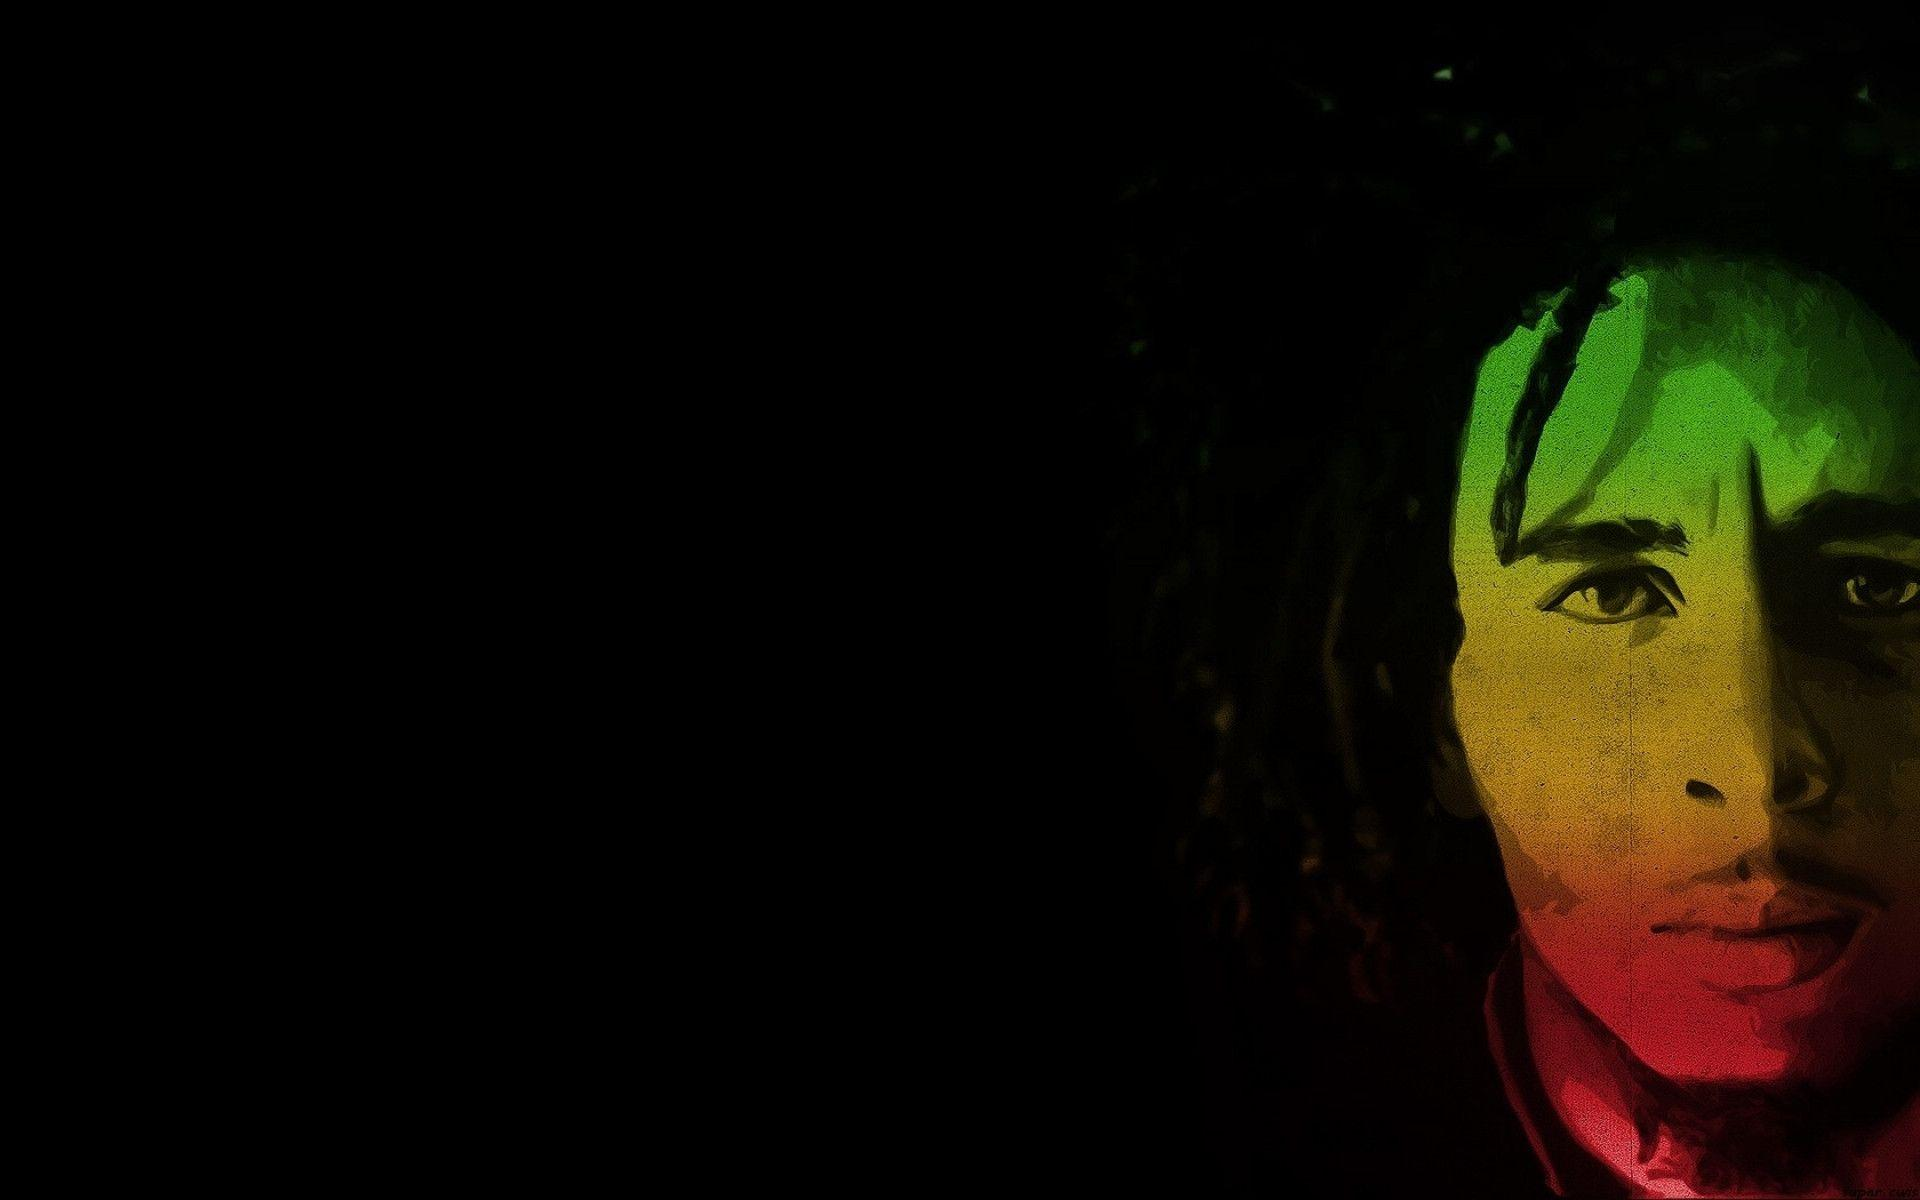 Best Rasta Wallpaper For Android Free Download On MoboMarket